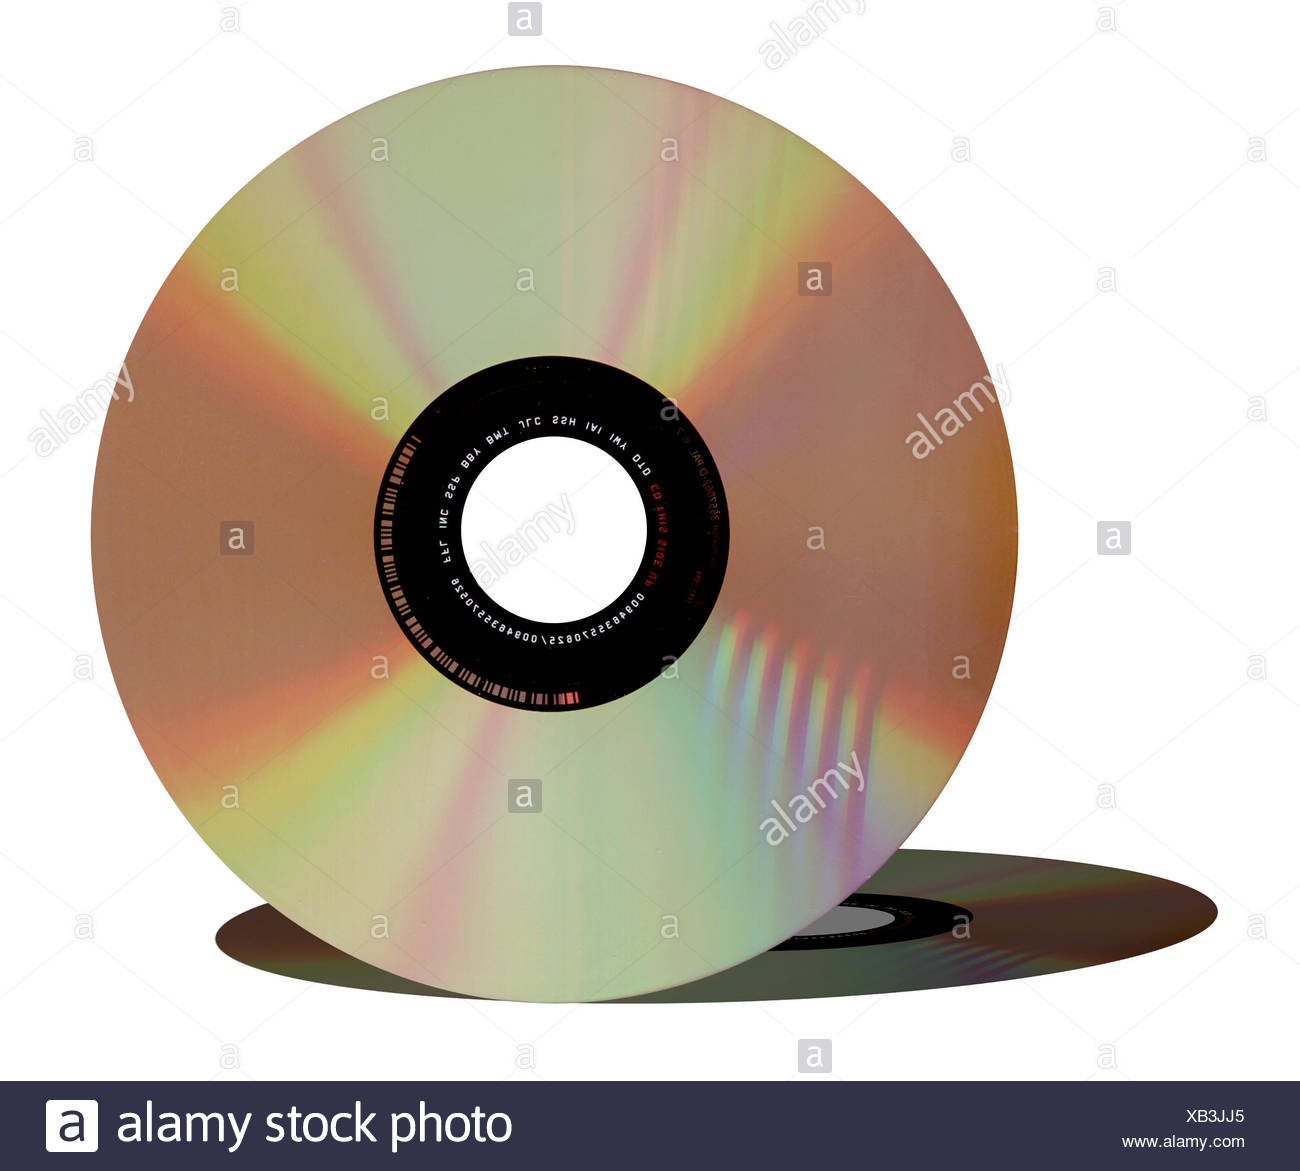 medium,store,dvd,CD,burn,cd-r,cd-rw,disc,copieren Stock Photo